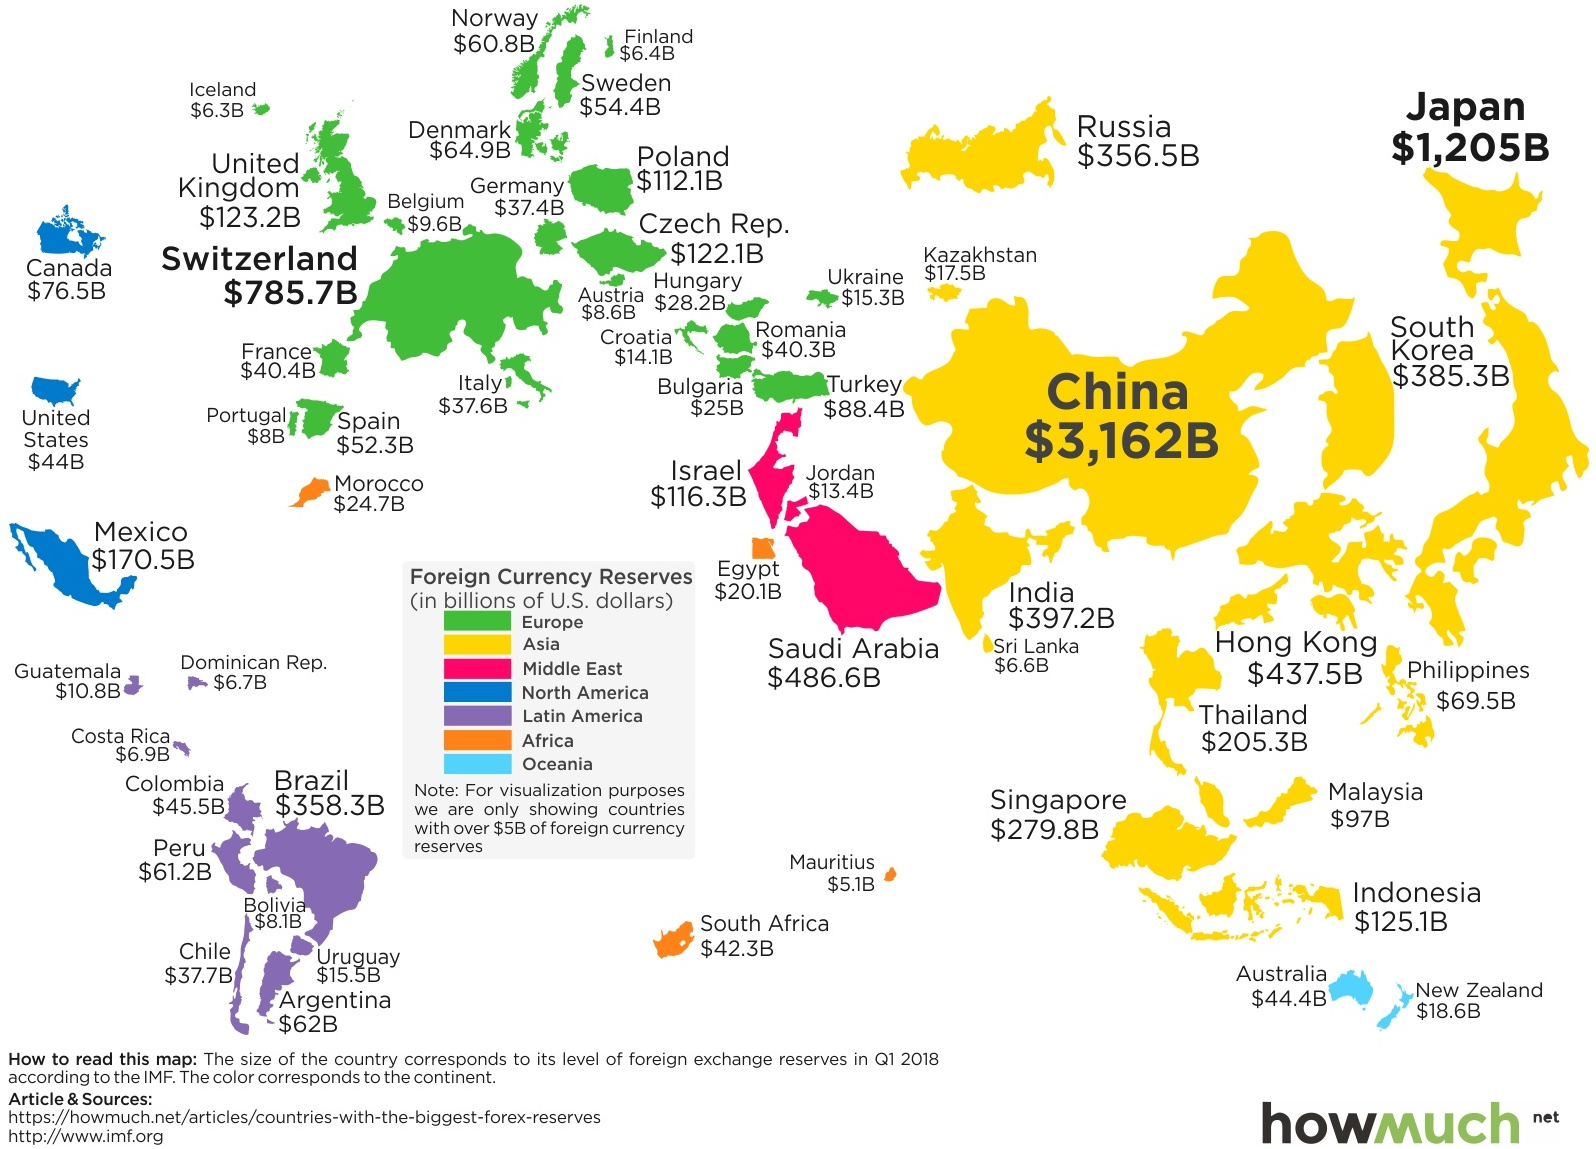 Mapped: The Countries With the Most Foreign Currency Reserves